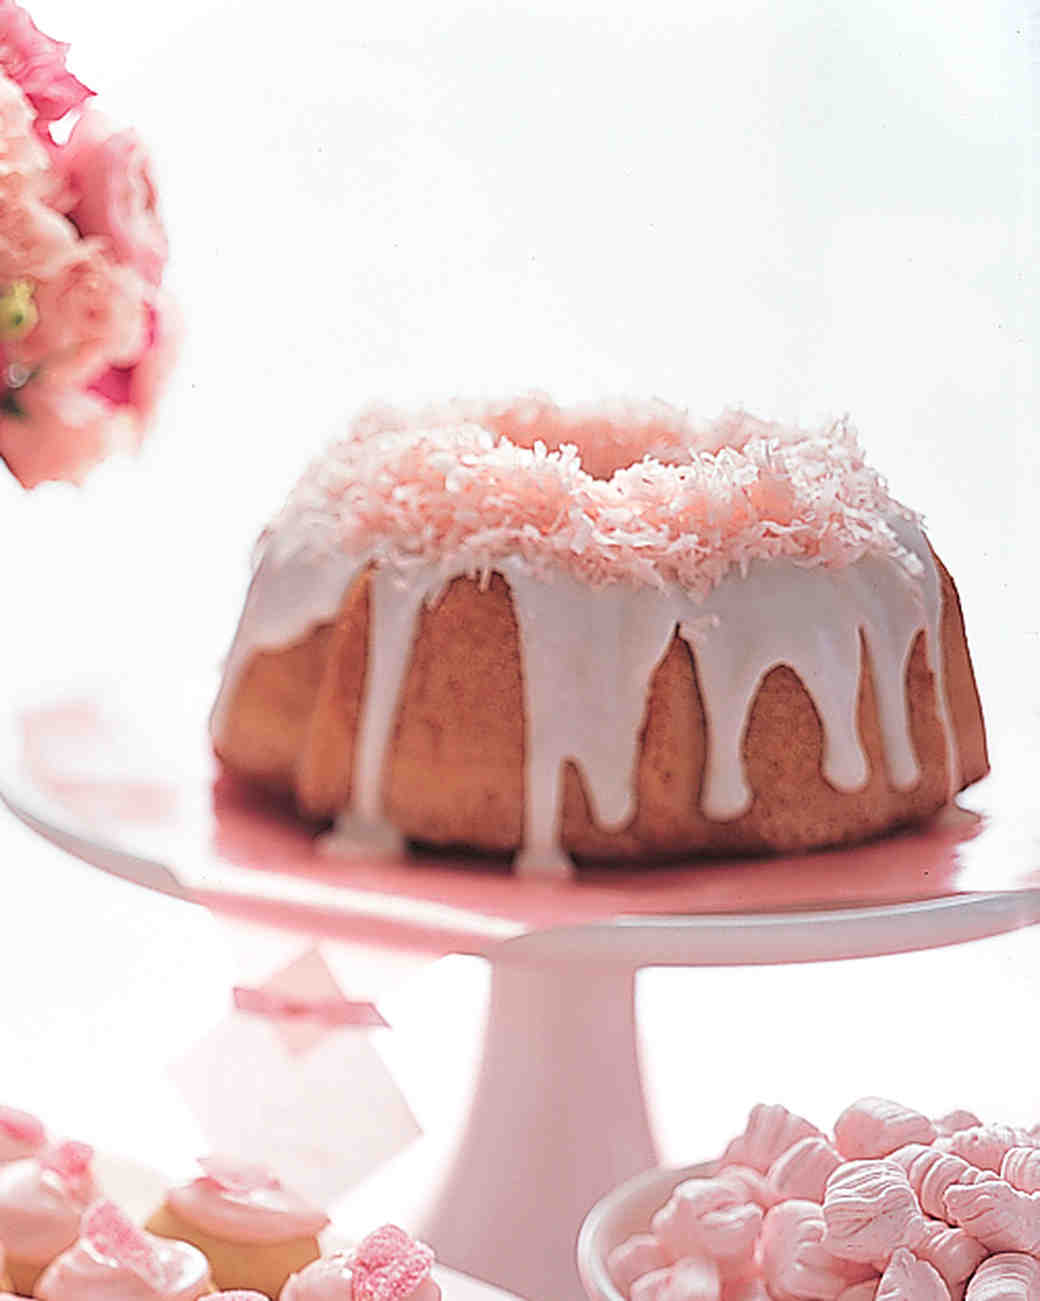 bridal-shower-cakes-pink-coconut-bundt-0814.jpg